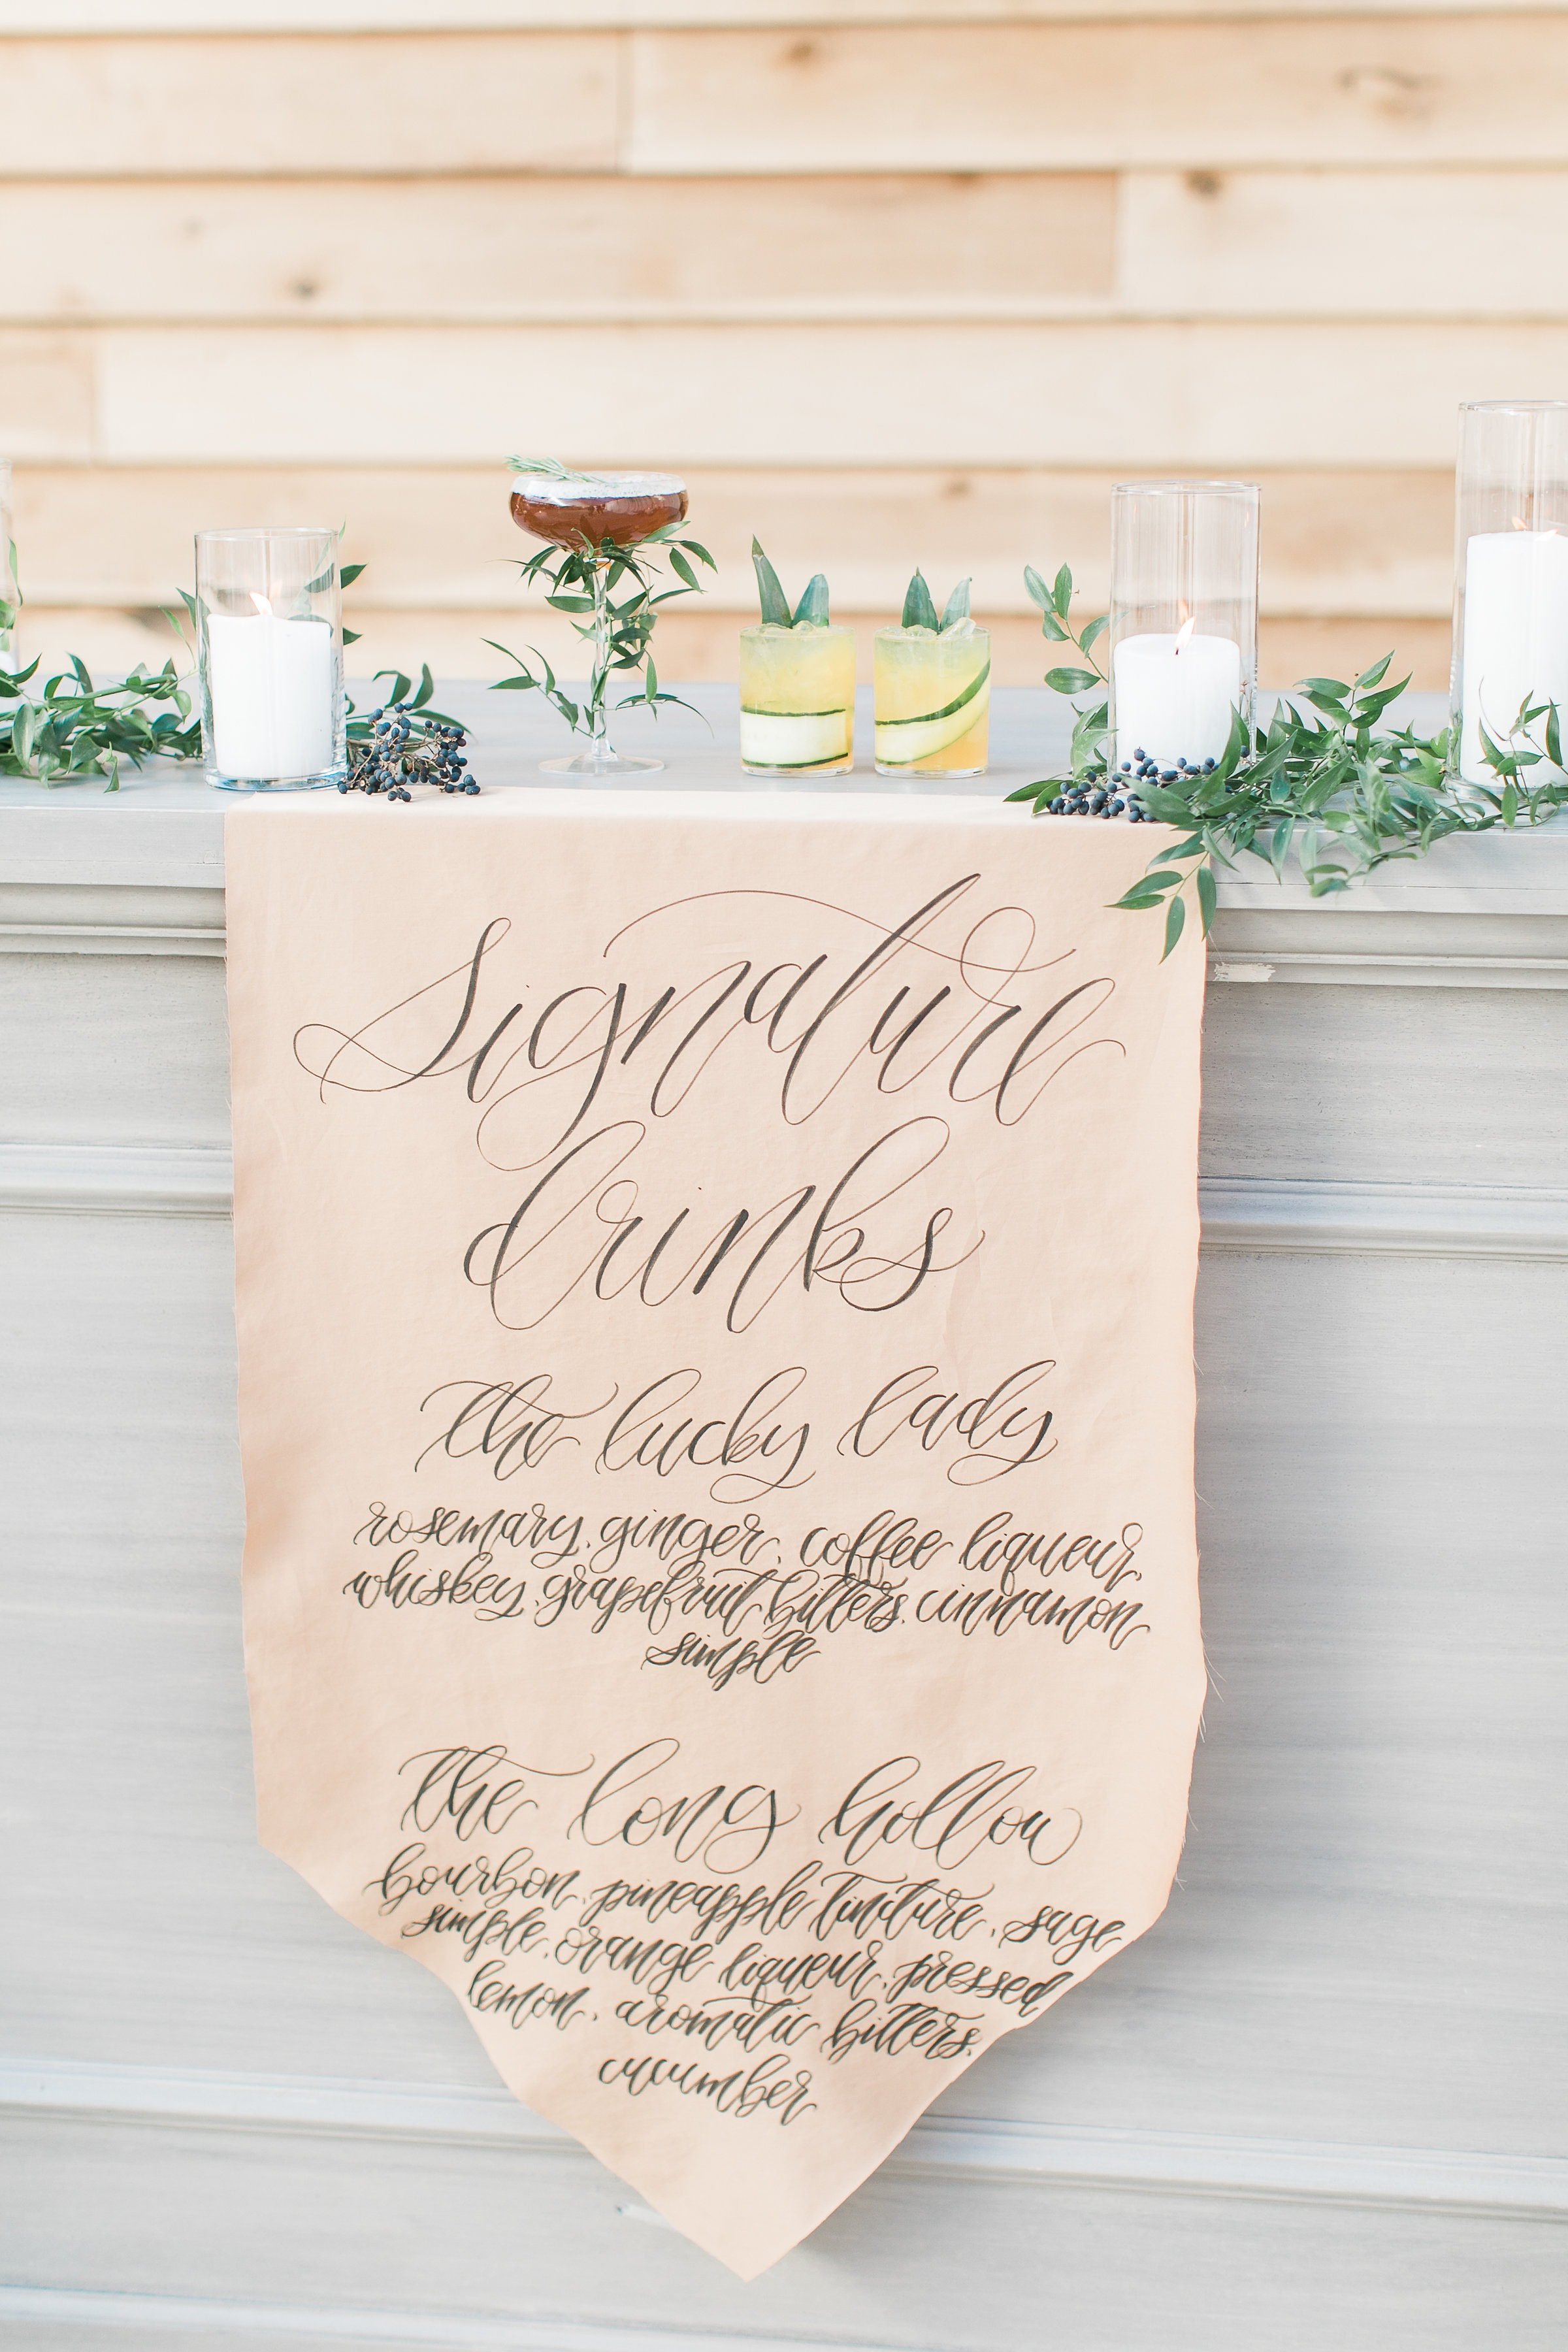 GracefullyMade-DayOfCalligraphy-Drinks